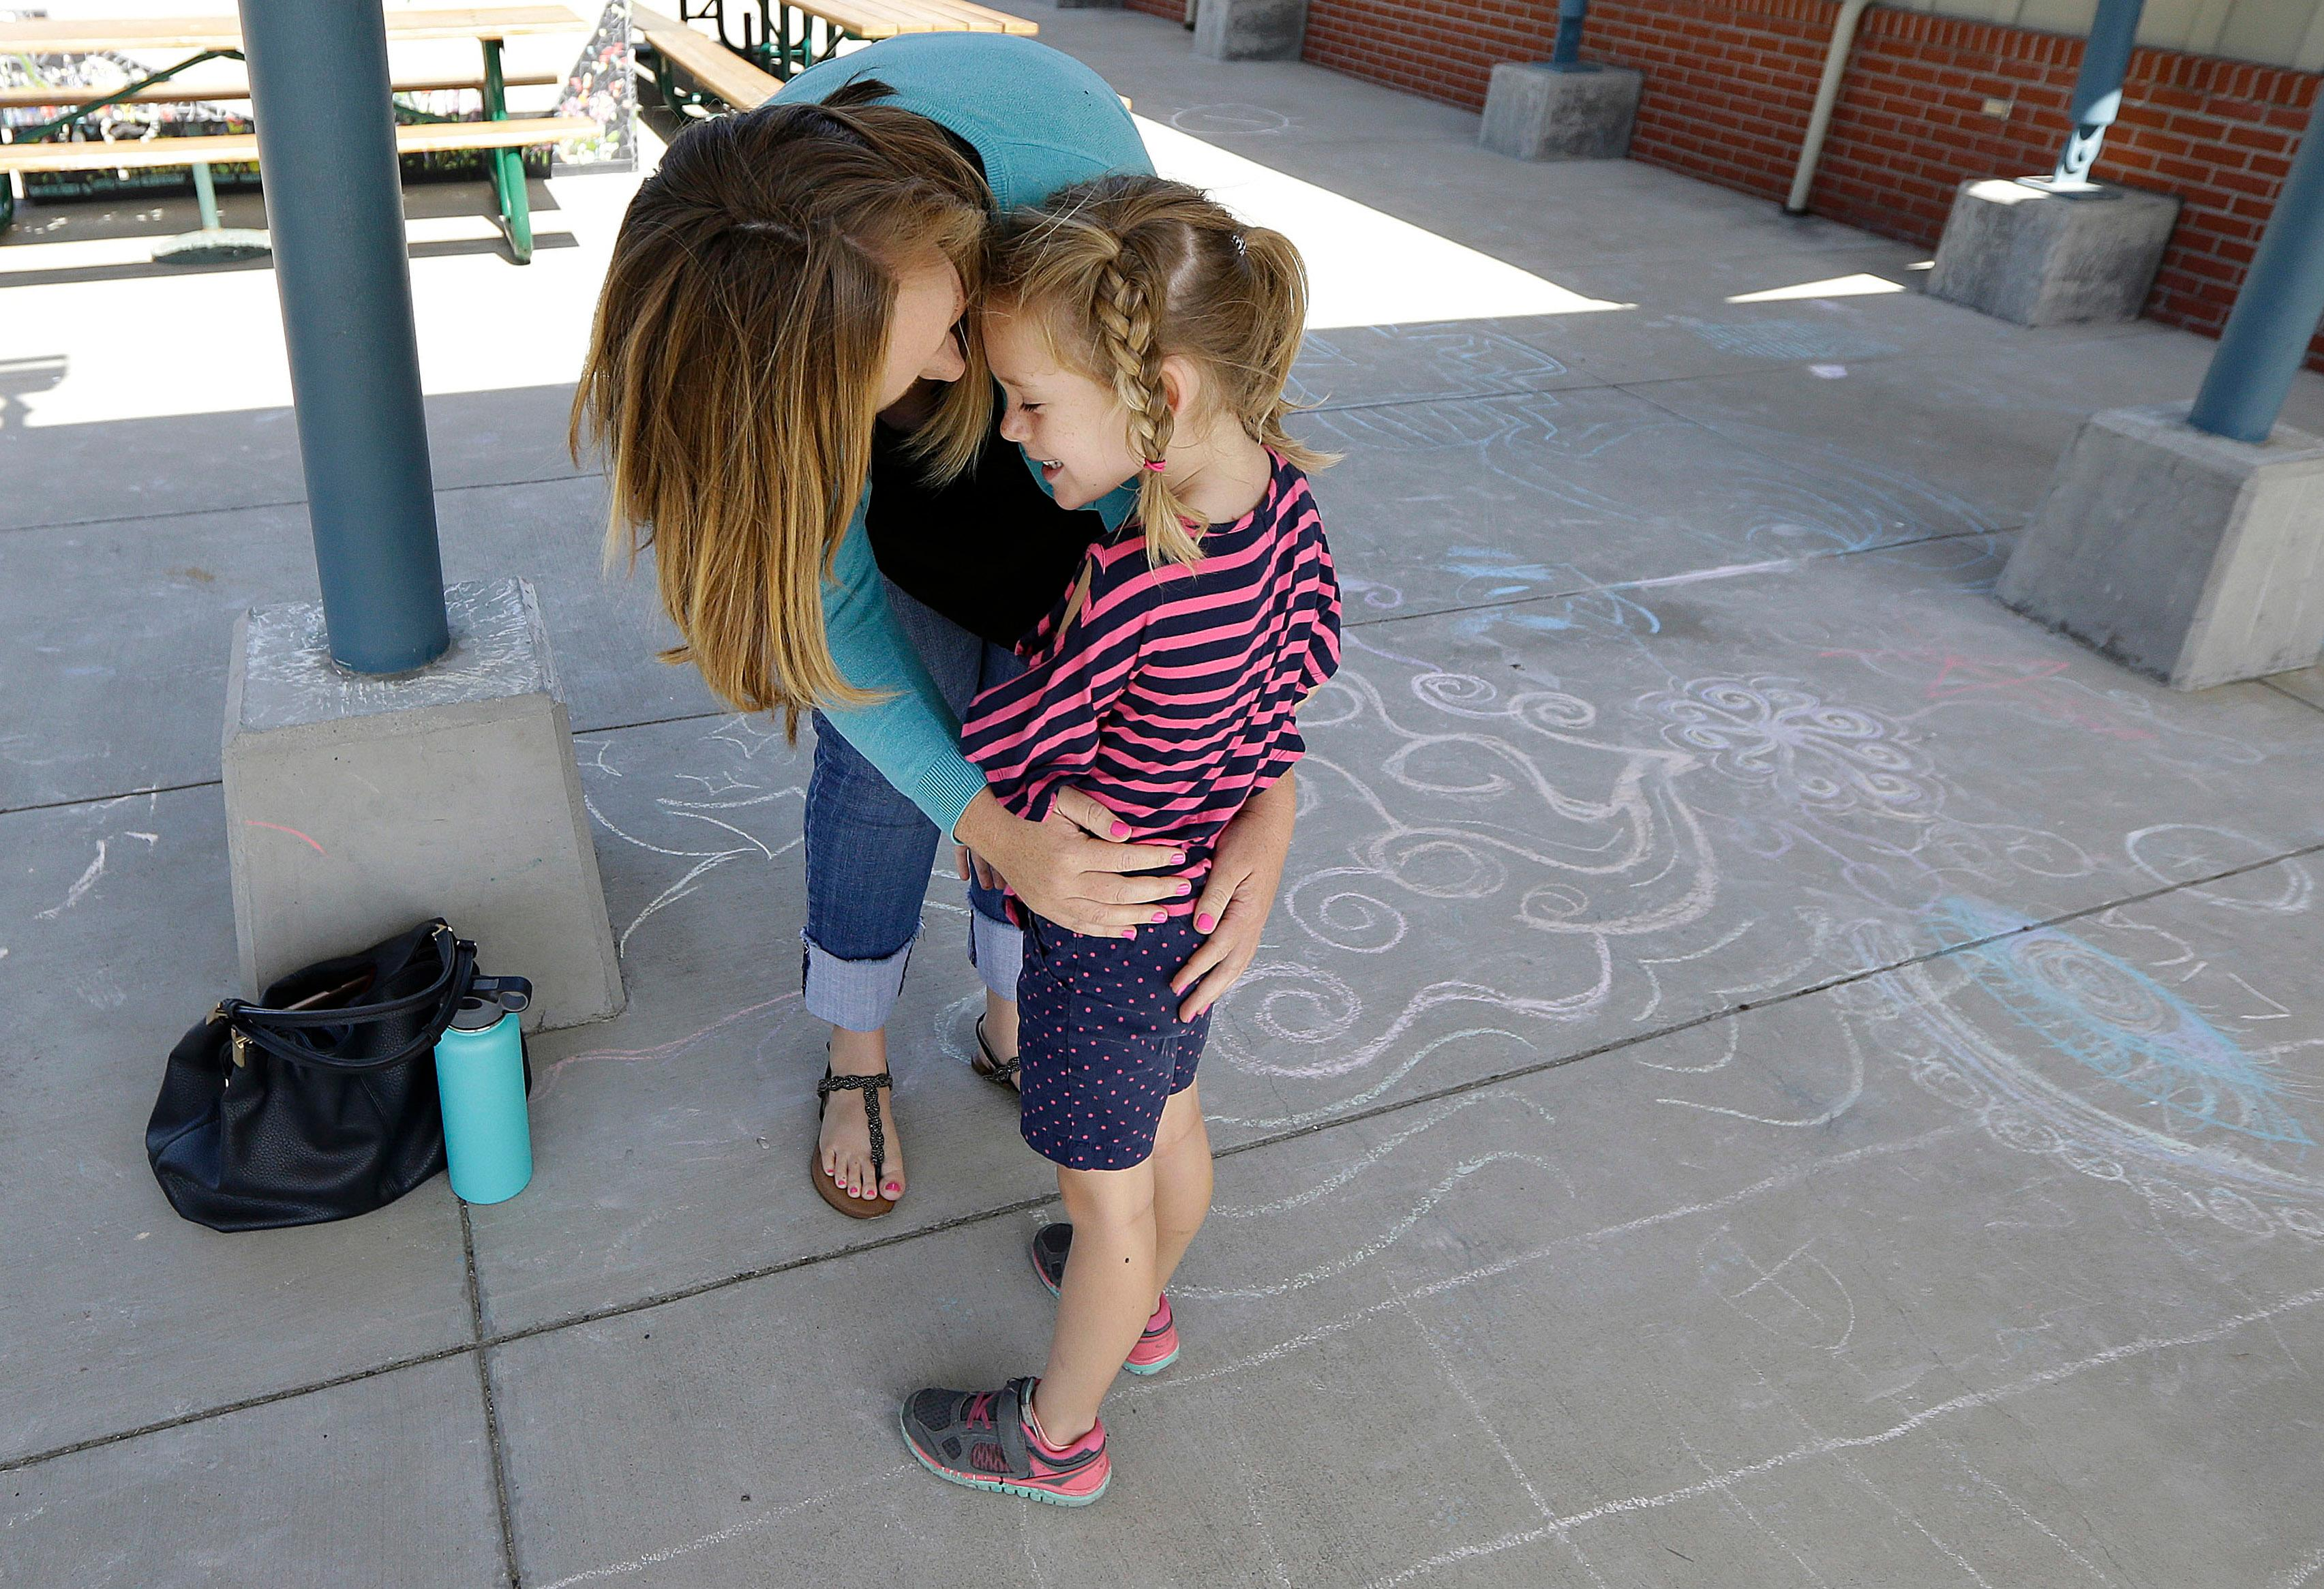 "In this Tuesday, July 11, 2017 photo, Molly Maxwell hugs her child Gracie at the Bay Area Rainbow Day Camp in El Cerrito, Calif. The camp caters to transgender and ""gender fluid"" children, aged 4-12, making it one of the only camps of its kind in the world open to preschoolers, experts say. (AP Photo/Jeff Chiu)"